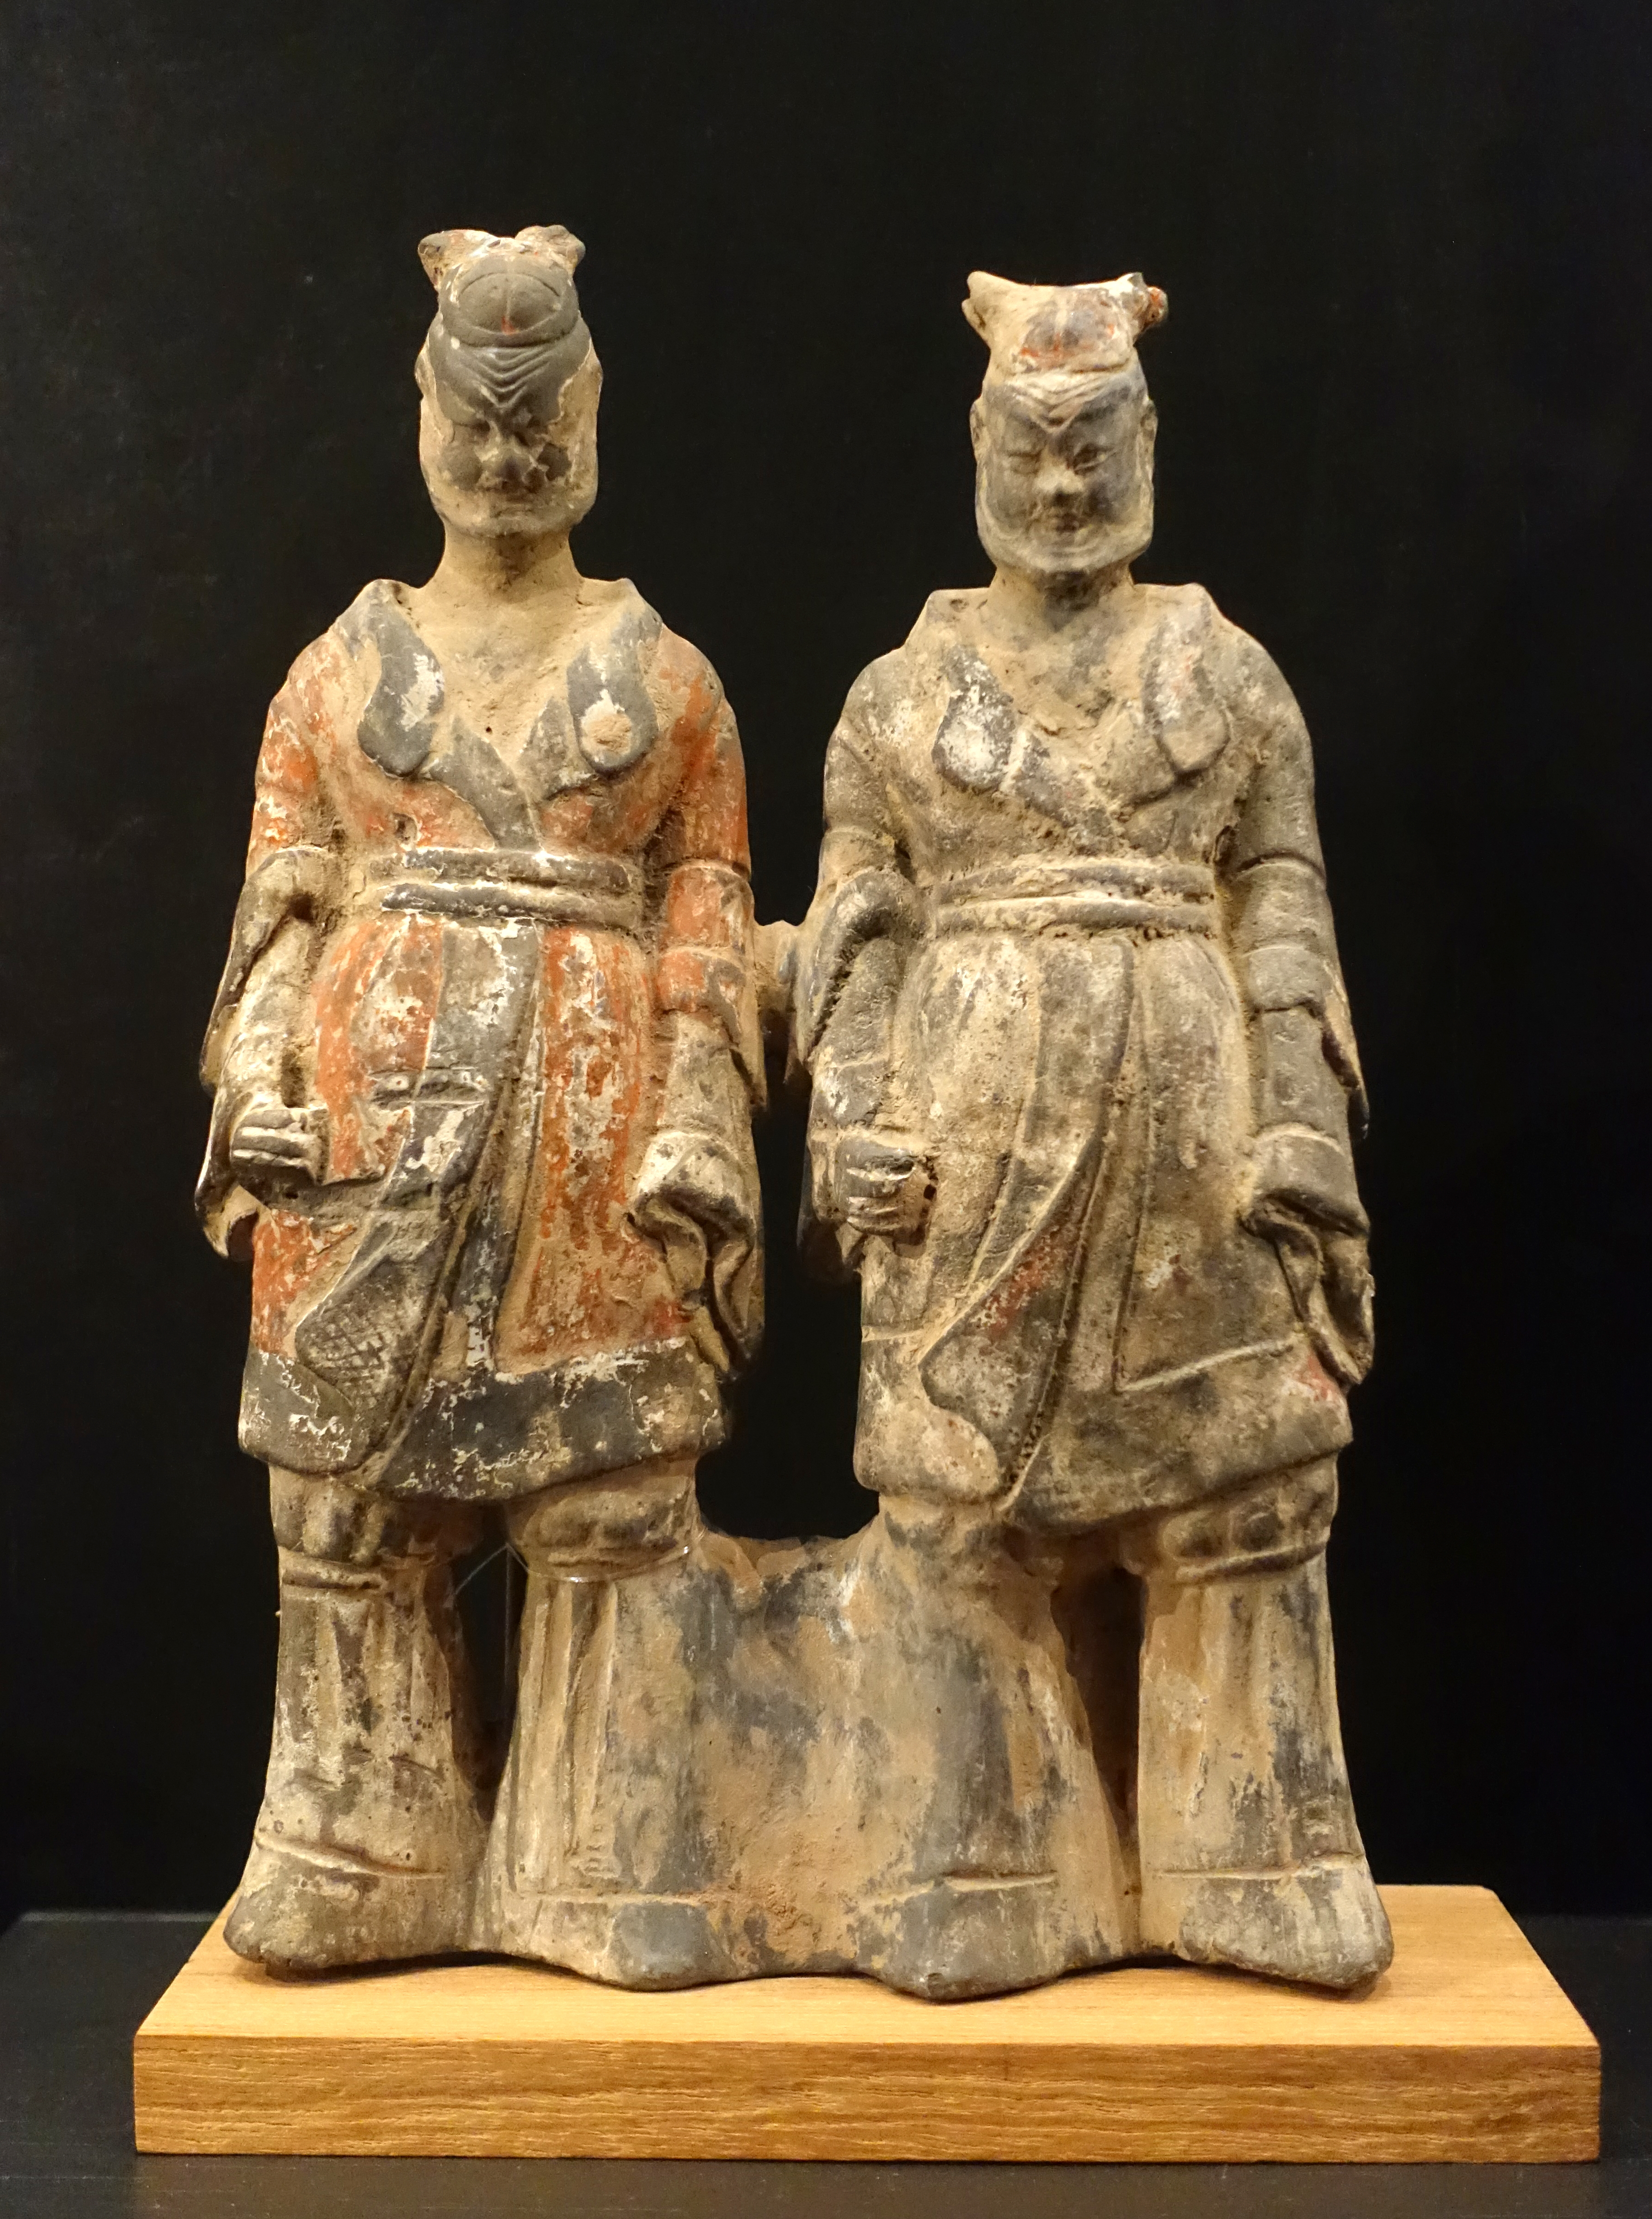 The Xianbei A Chinese Dynasty Emerges From Nomadic